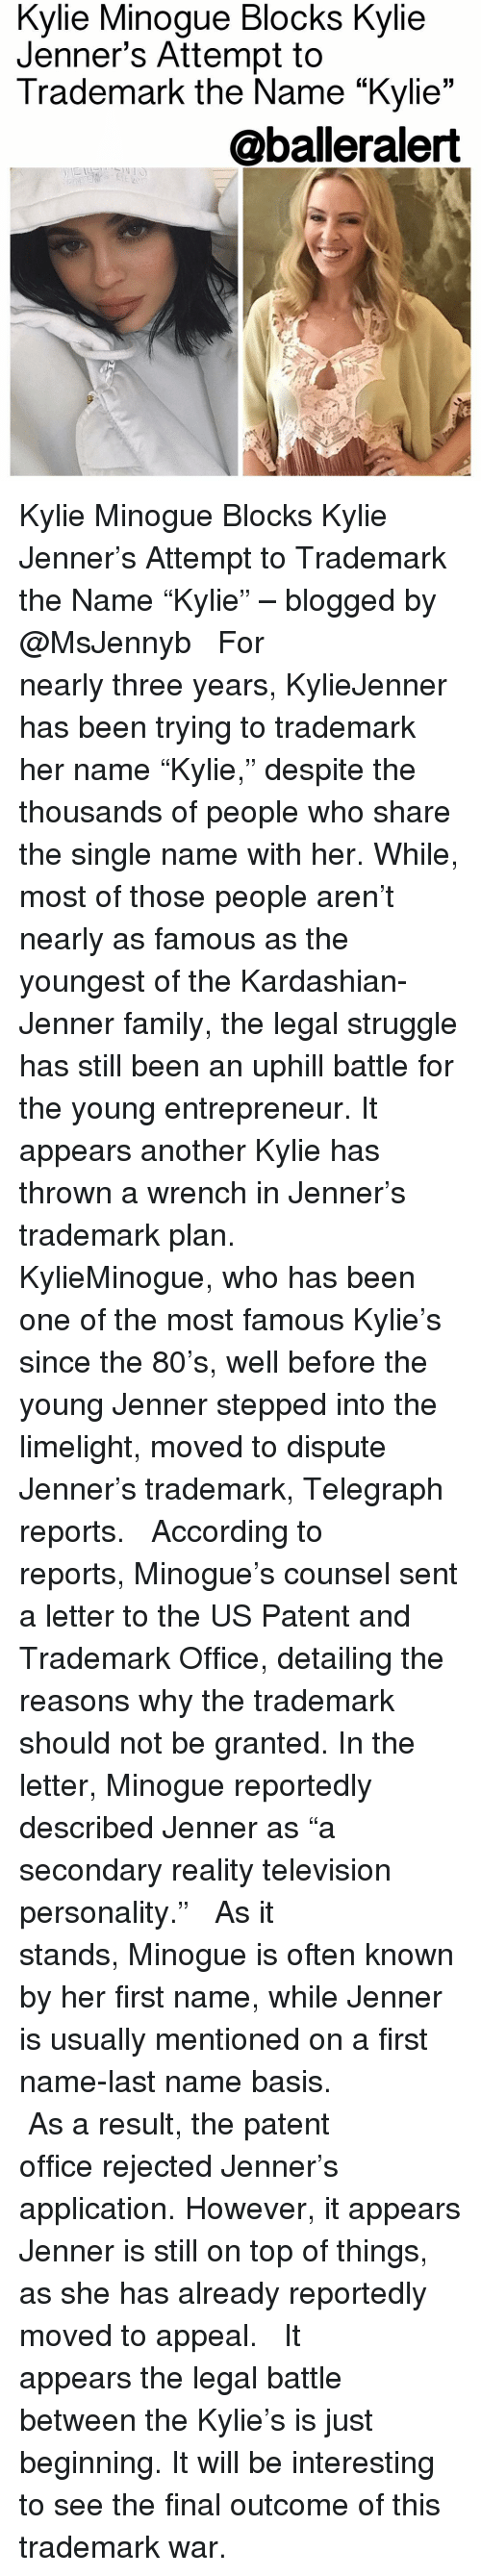 """kylie minogue: Minogue Blocks Kylie  Minogue Attempt to  Trademark the Name """"Kylie  33  @balleralert Kylie Minogue Blocks Kylie Jenner's Attempt to Trademark the Name """"Kylie"""" – blogged by @MsJennyb ⠀⠀⠀⠀⠀⠀⠀ ⠀⠀⠀⠀⠀⠀⠀ For nearly three years, KylieJenner has been trying to trademark her name """"Kylie,"""" despite the thousands of people who share the single name with her. While, most of those people aren't nearly as famous as the youngest of the Kardashian-Jenner family, the legal struggle has still been an uphill battle for the young entrepreneur. It appears another Kylie has thrown a wrench in Jenner's trademark plan. ⠀⠀⠀⠀⠀⠀⠀ ⠀⠀⠀⠀⠀⠀⠀ KylieMinogue, who has been one of the most famous Kylie's since the 80's, well before the young Jenner stepped into the limelight, moved to dispute Jenner's trademark, Telegraph reports. ⠀⠀⠀⠀⠀⠀⠀ ⠀⠀⠀⠀⠀⠀⠀ According to reports, Minogue's counsel sent a letter to the US Patent and Trademark Office, detailing the reasons why the trademark should not be granted. In the letter, Minogue reportedly described Jenner as """"a secondary reality television personality."""" ⠀⠀⠀⠀⠀⠀⠀ ⠀⠀⠀⠀⠀⠀⠀ As it stands, Minogue is often known by her first name, while Jenner is usually mentioned on a first name-last name basis. ⠀⠀⠀⠀⠀⠀⠀ ⠀⠀⠀⠀⠀⠀⠀ As a result, the patent office rejected Jenner's application. However, it appears Jenner is still on top of things, as she has already reportedly moved to appeal. ⠀⠀⠀⠀⠀⠀⠀ ⠀⠀⠀⠀⠀⠀⠀ It appears the legal battle between the Kylie's is just beginning. It will be interesting to see the final outcome of this trademark war."""